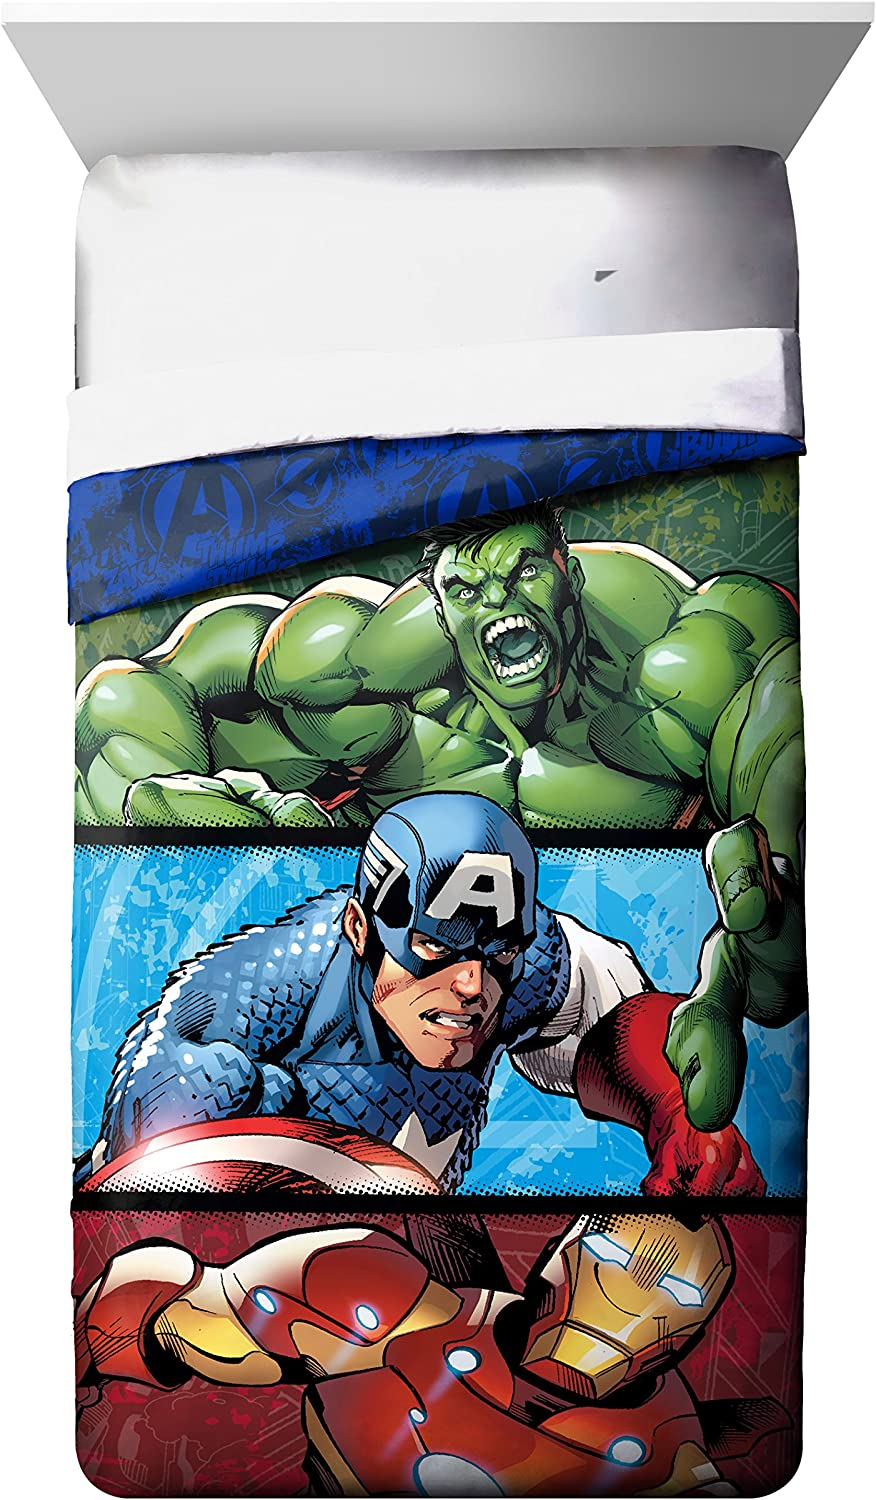 Marvel Avengers Publish Full Comforter - Super Soft Kids Reversible Bedding features Iron Man, Hulk, and Captain America - Fade Resistant Polyester Microfiber Fill (Official Marvel Product)